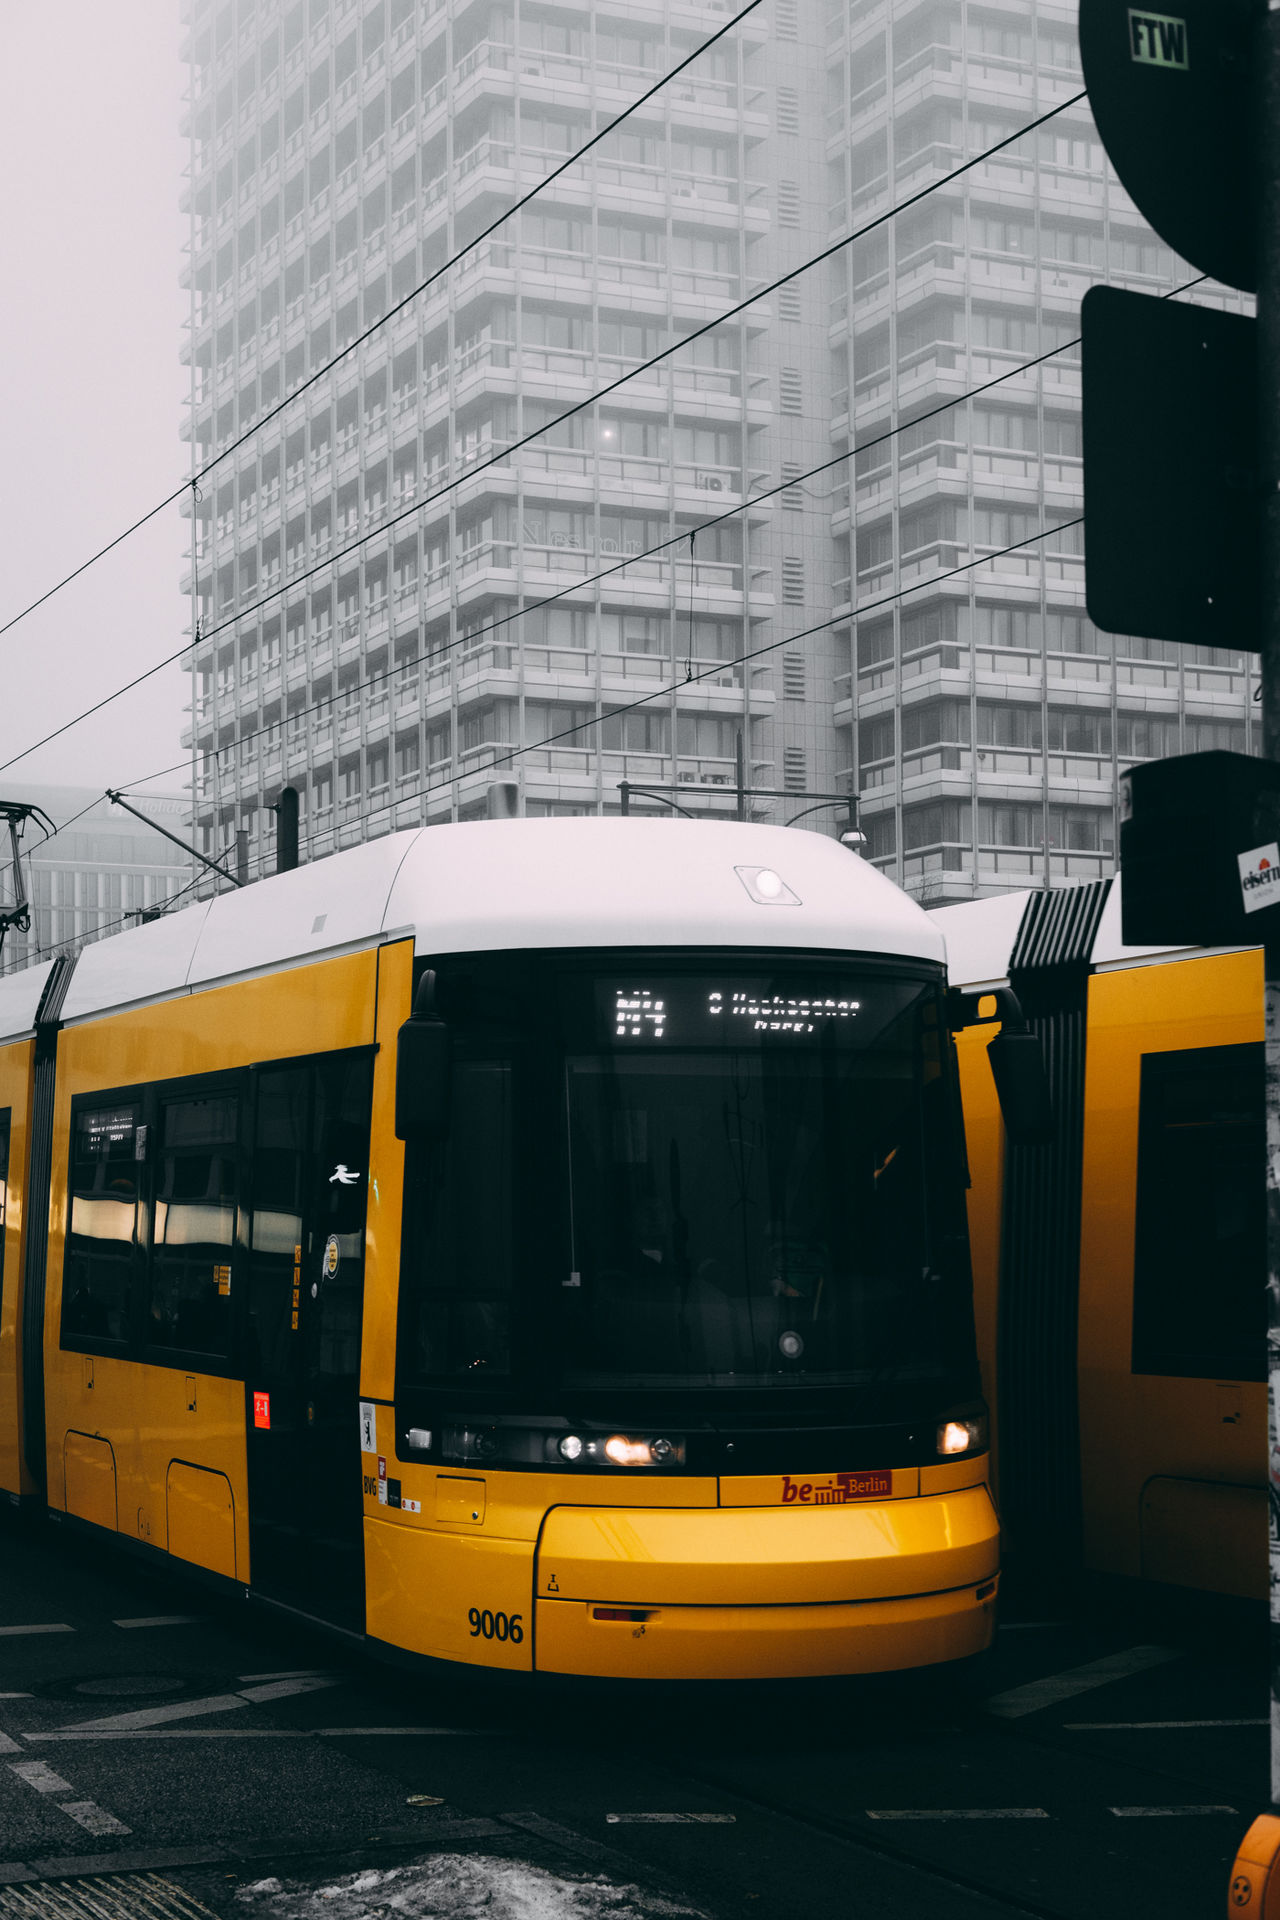 Keep on rollin' baby... you know what time it is... Architecture Bvg City Commuter Train Day Fujifilm Land Vehicle Mode Of Transport No People Outdoors Public Transportation Rush Hour Subway Train Train - Vehicle Transportation Travel VSCO Vscogrid Xpro2